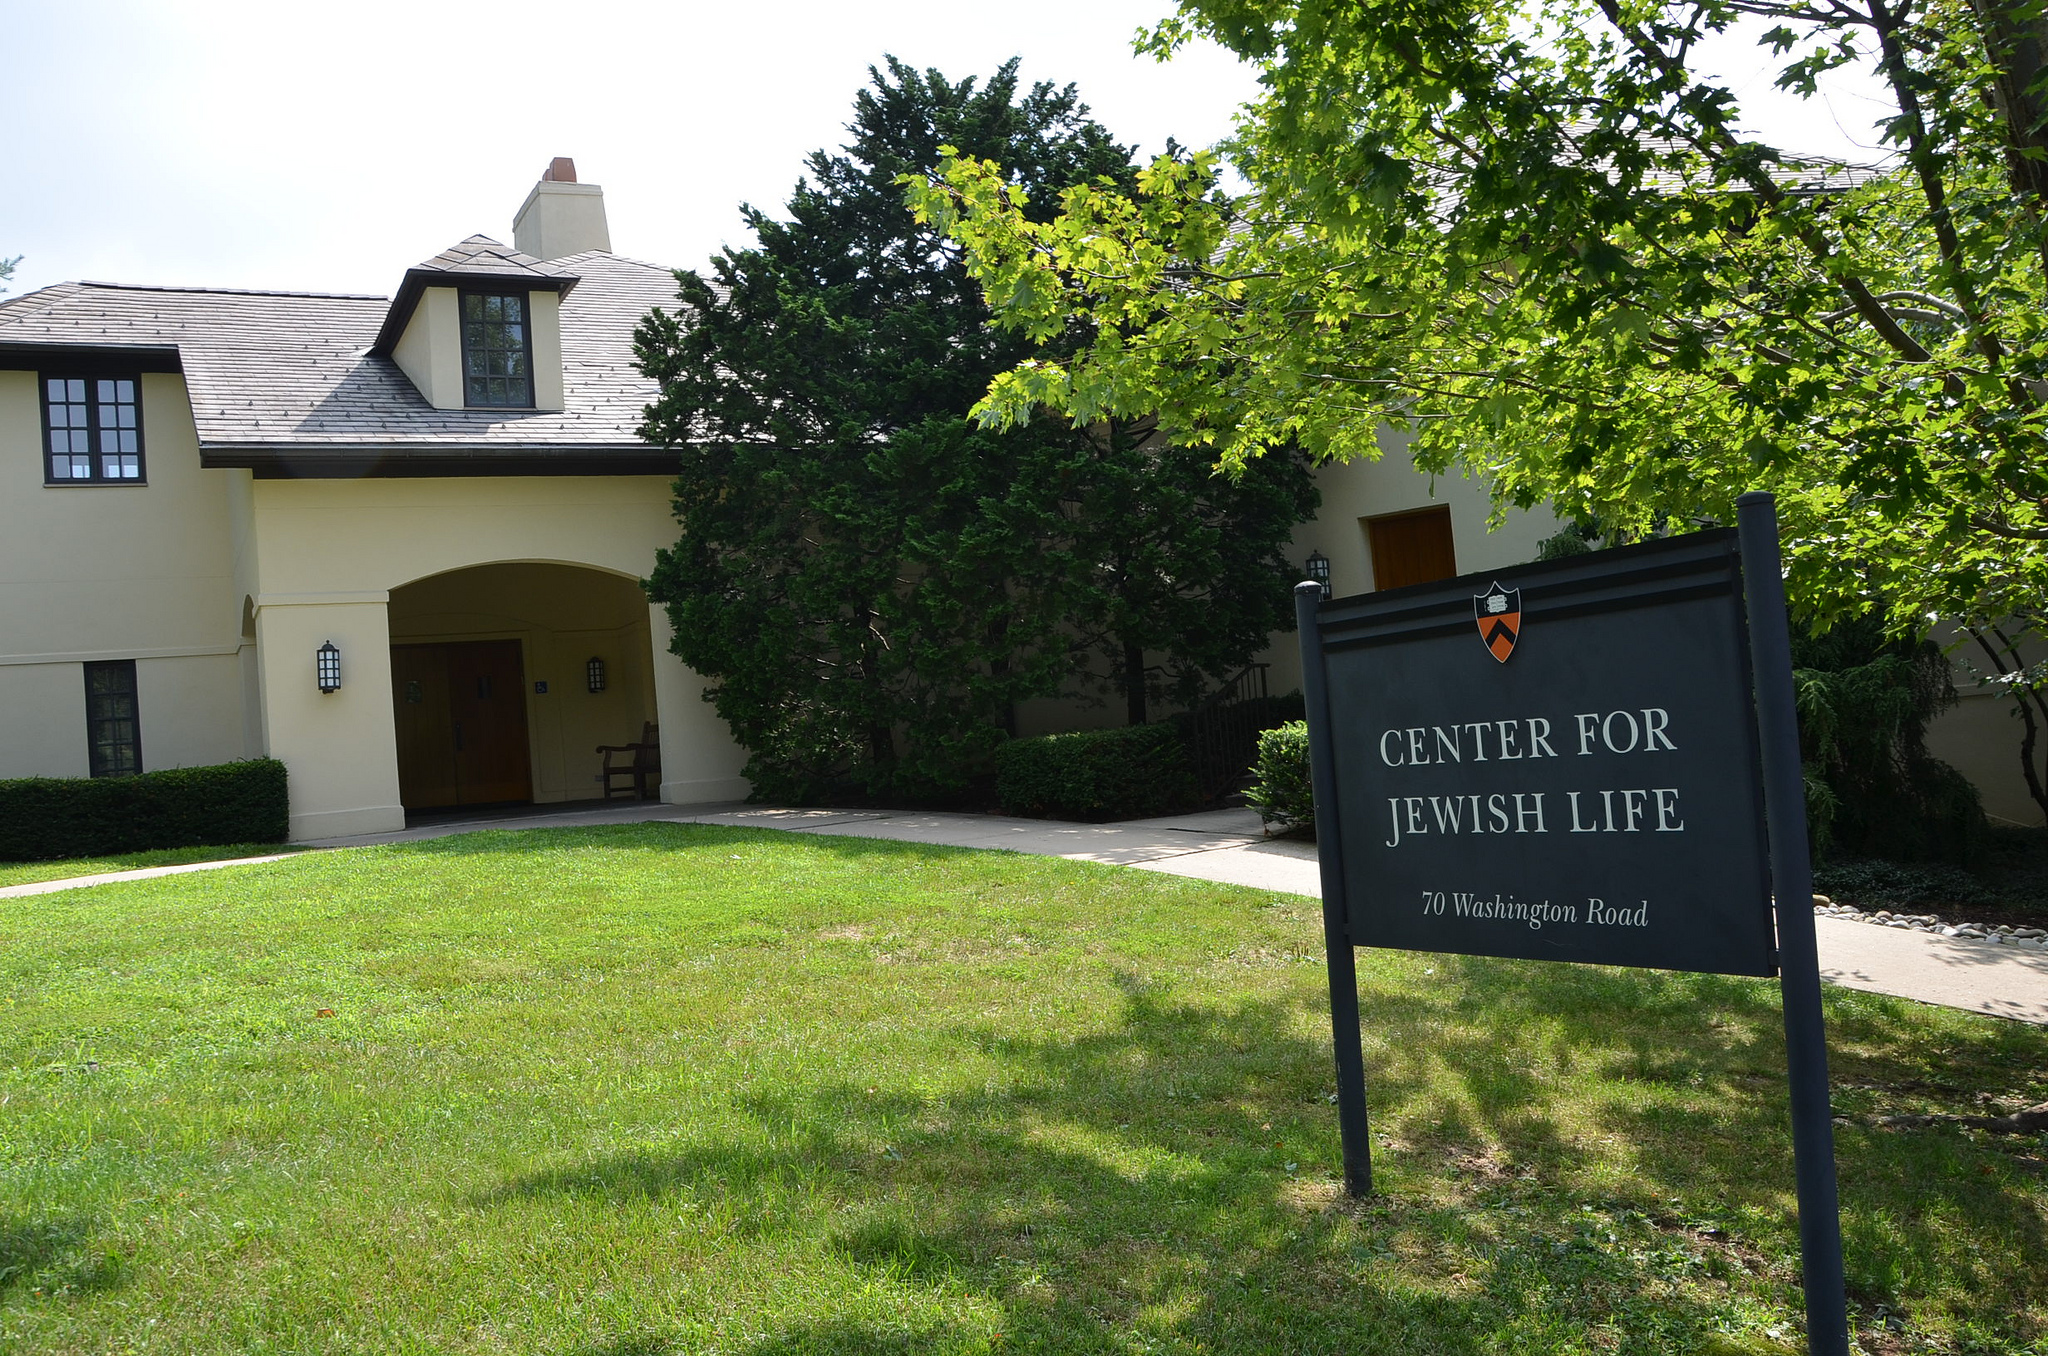 Center for Jewish Life building